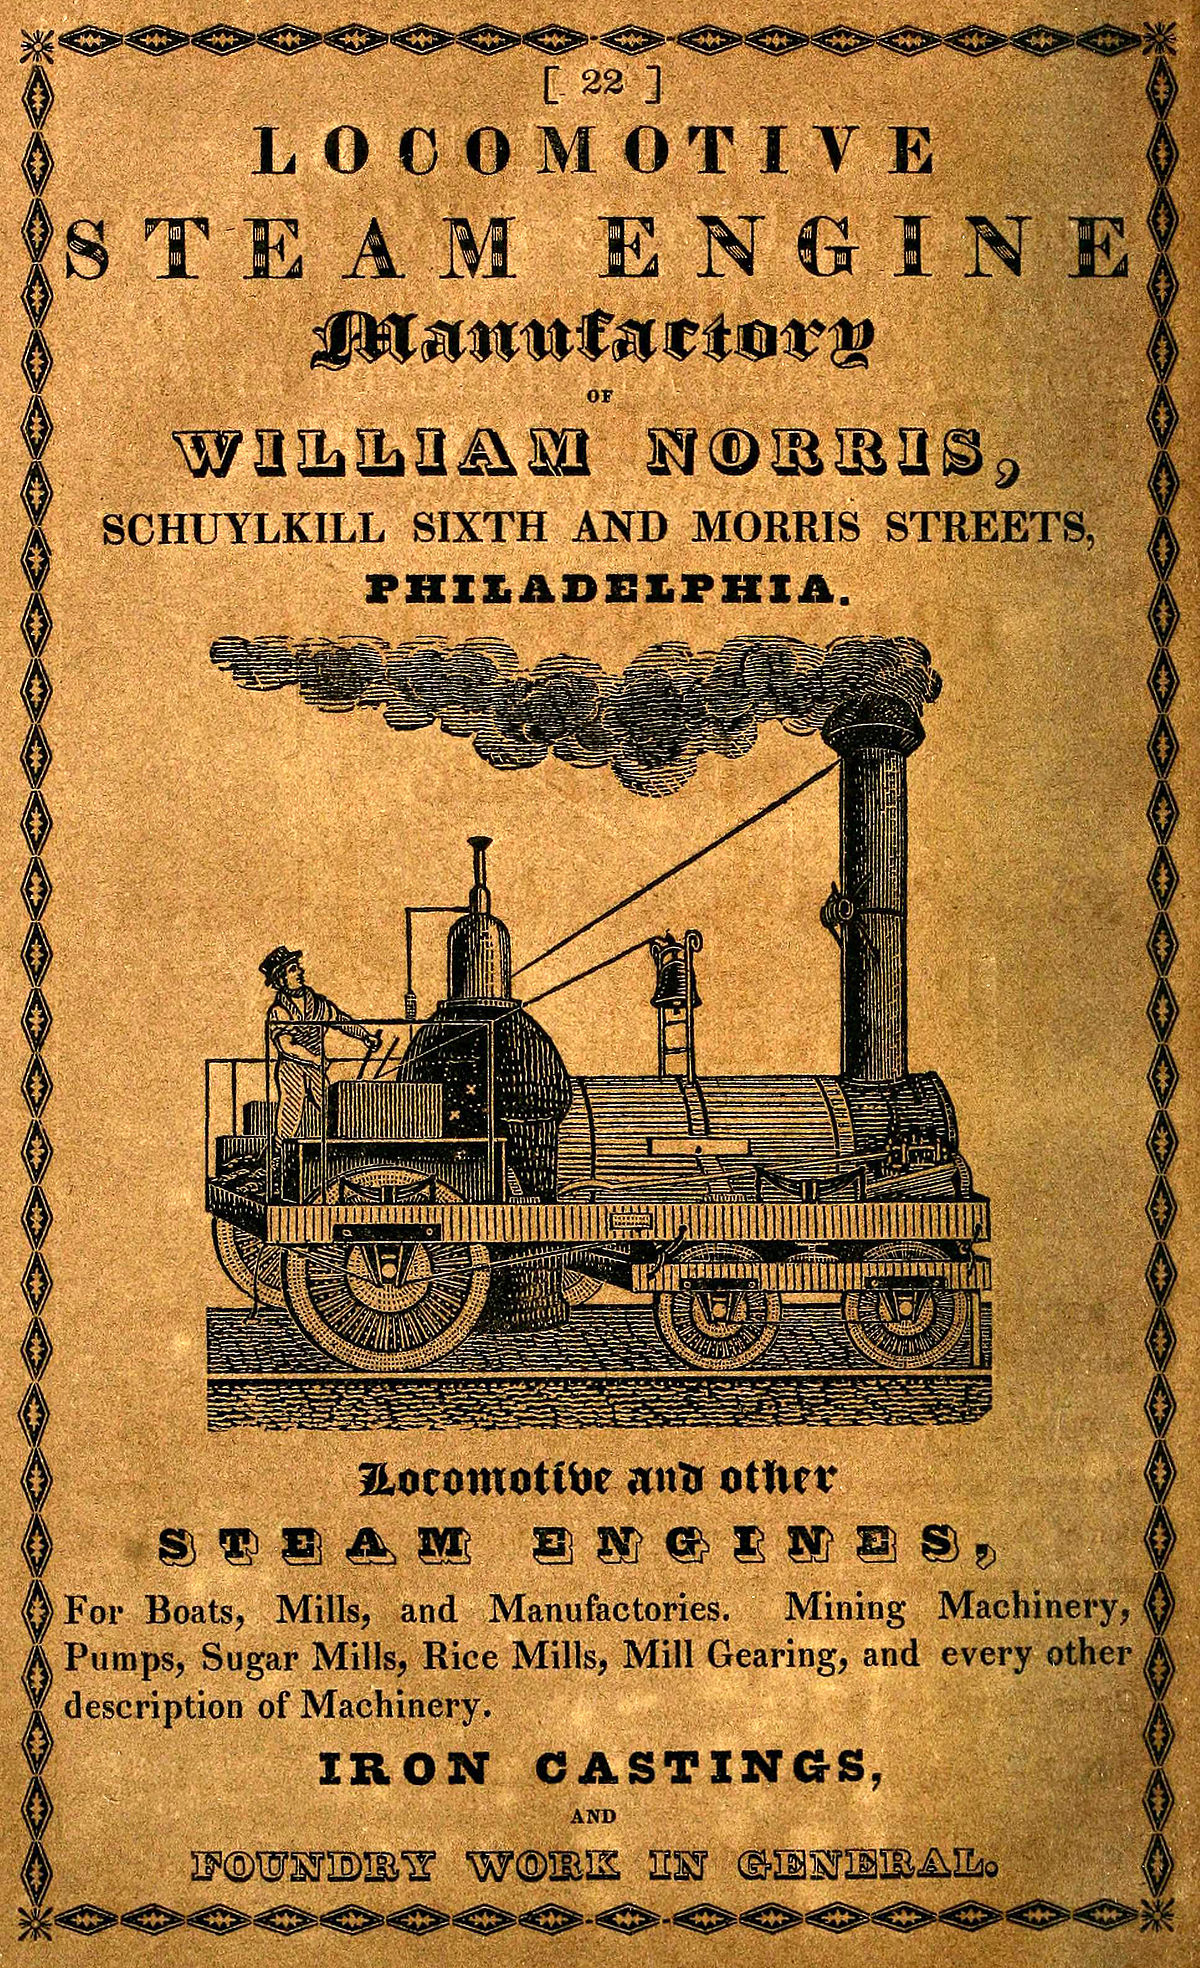 Px Mcelroy S Philadelphia City Directory William Norris on How A Steam Locomotive Works